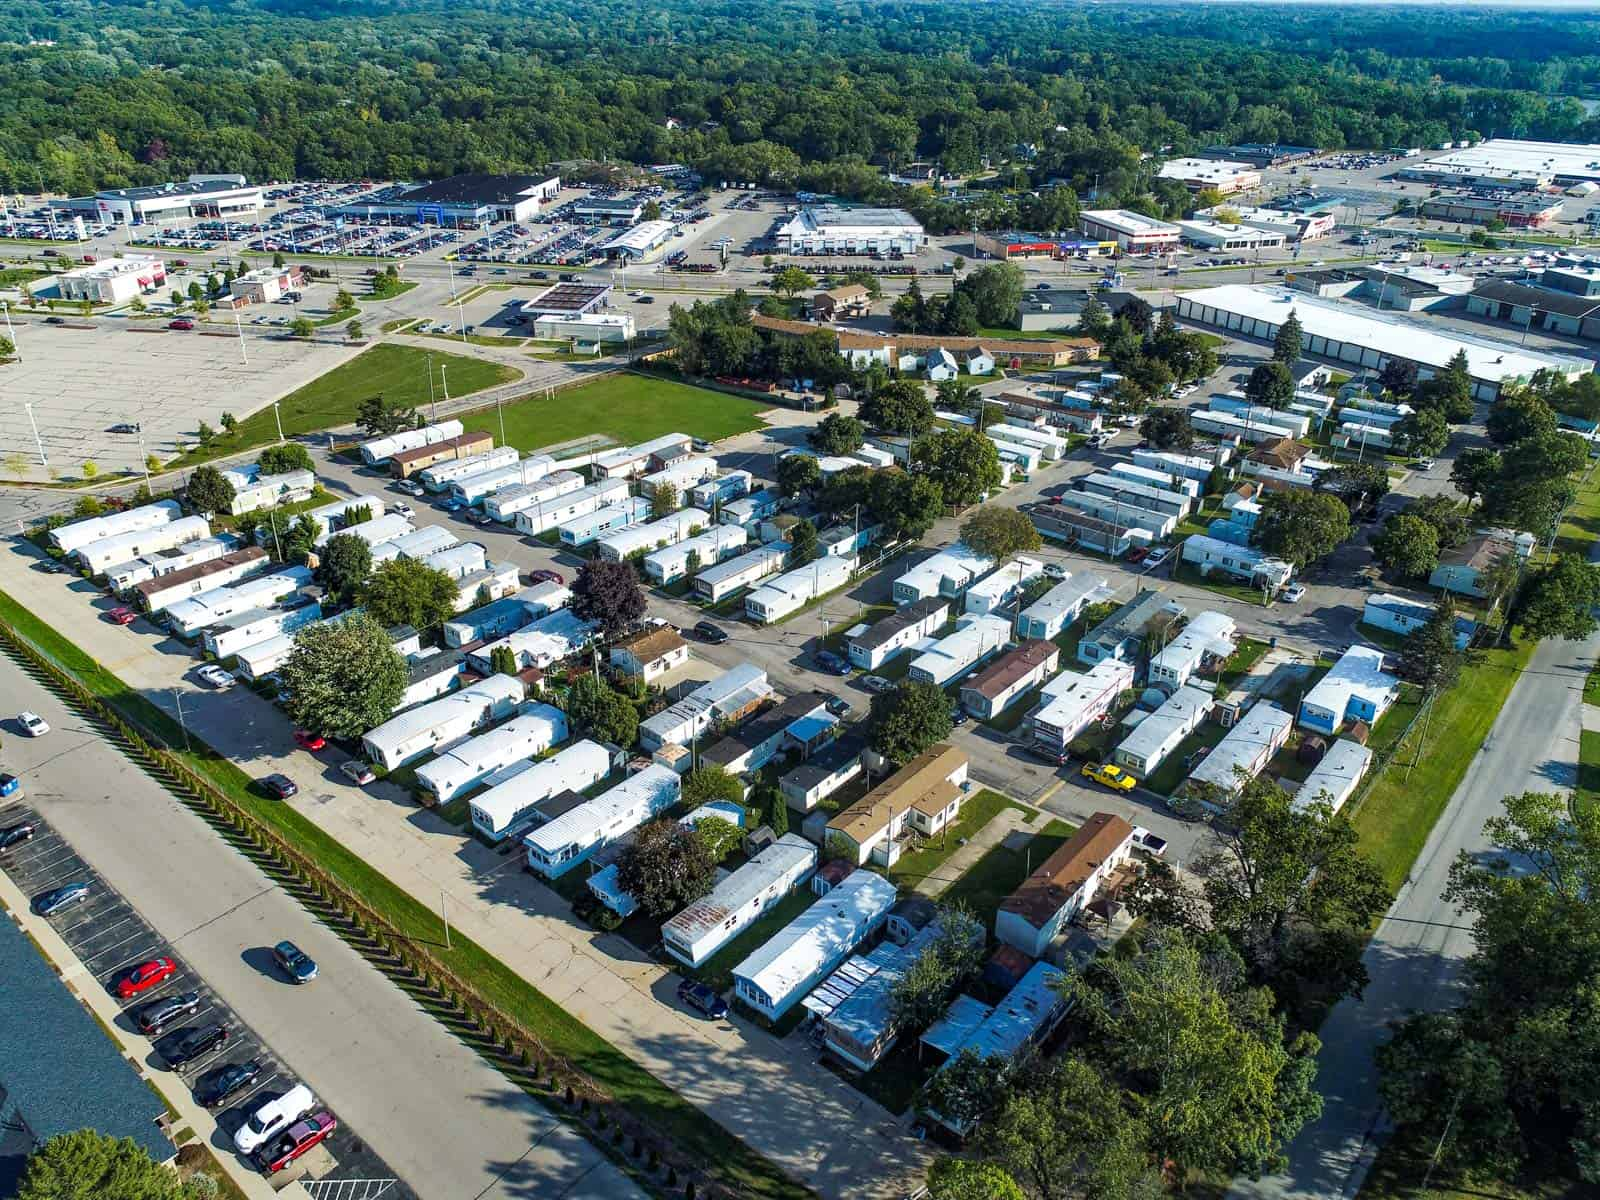 aerial drone photo of residential trailer park in Grand Rapids, MI